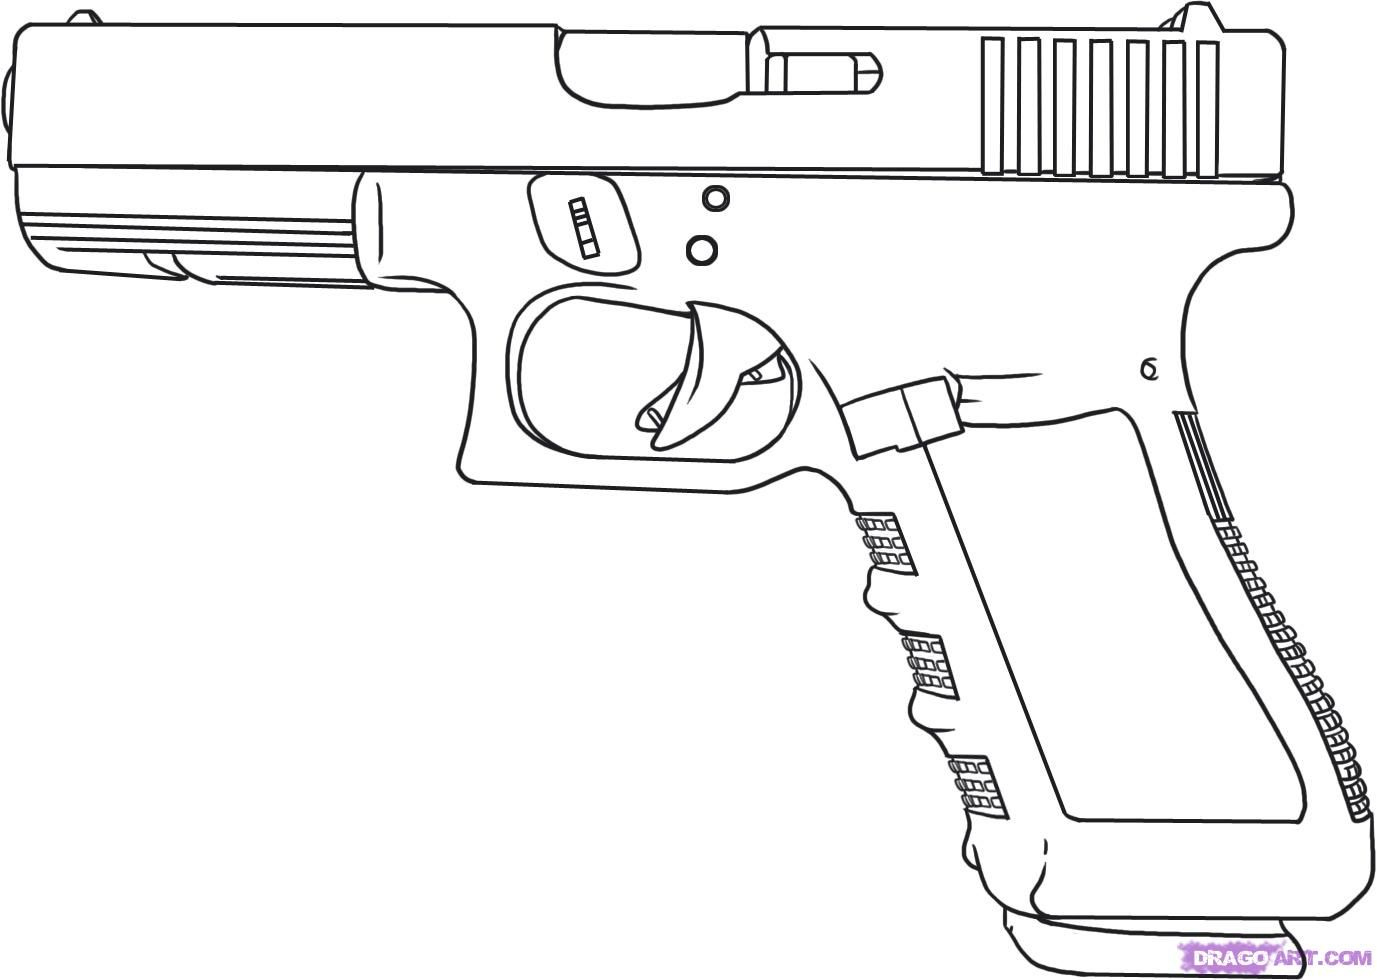 Good drawing of a cop 9mm pistol drawing guns for Good sketches to draw